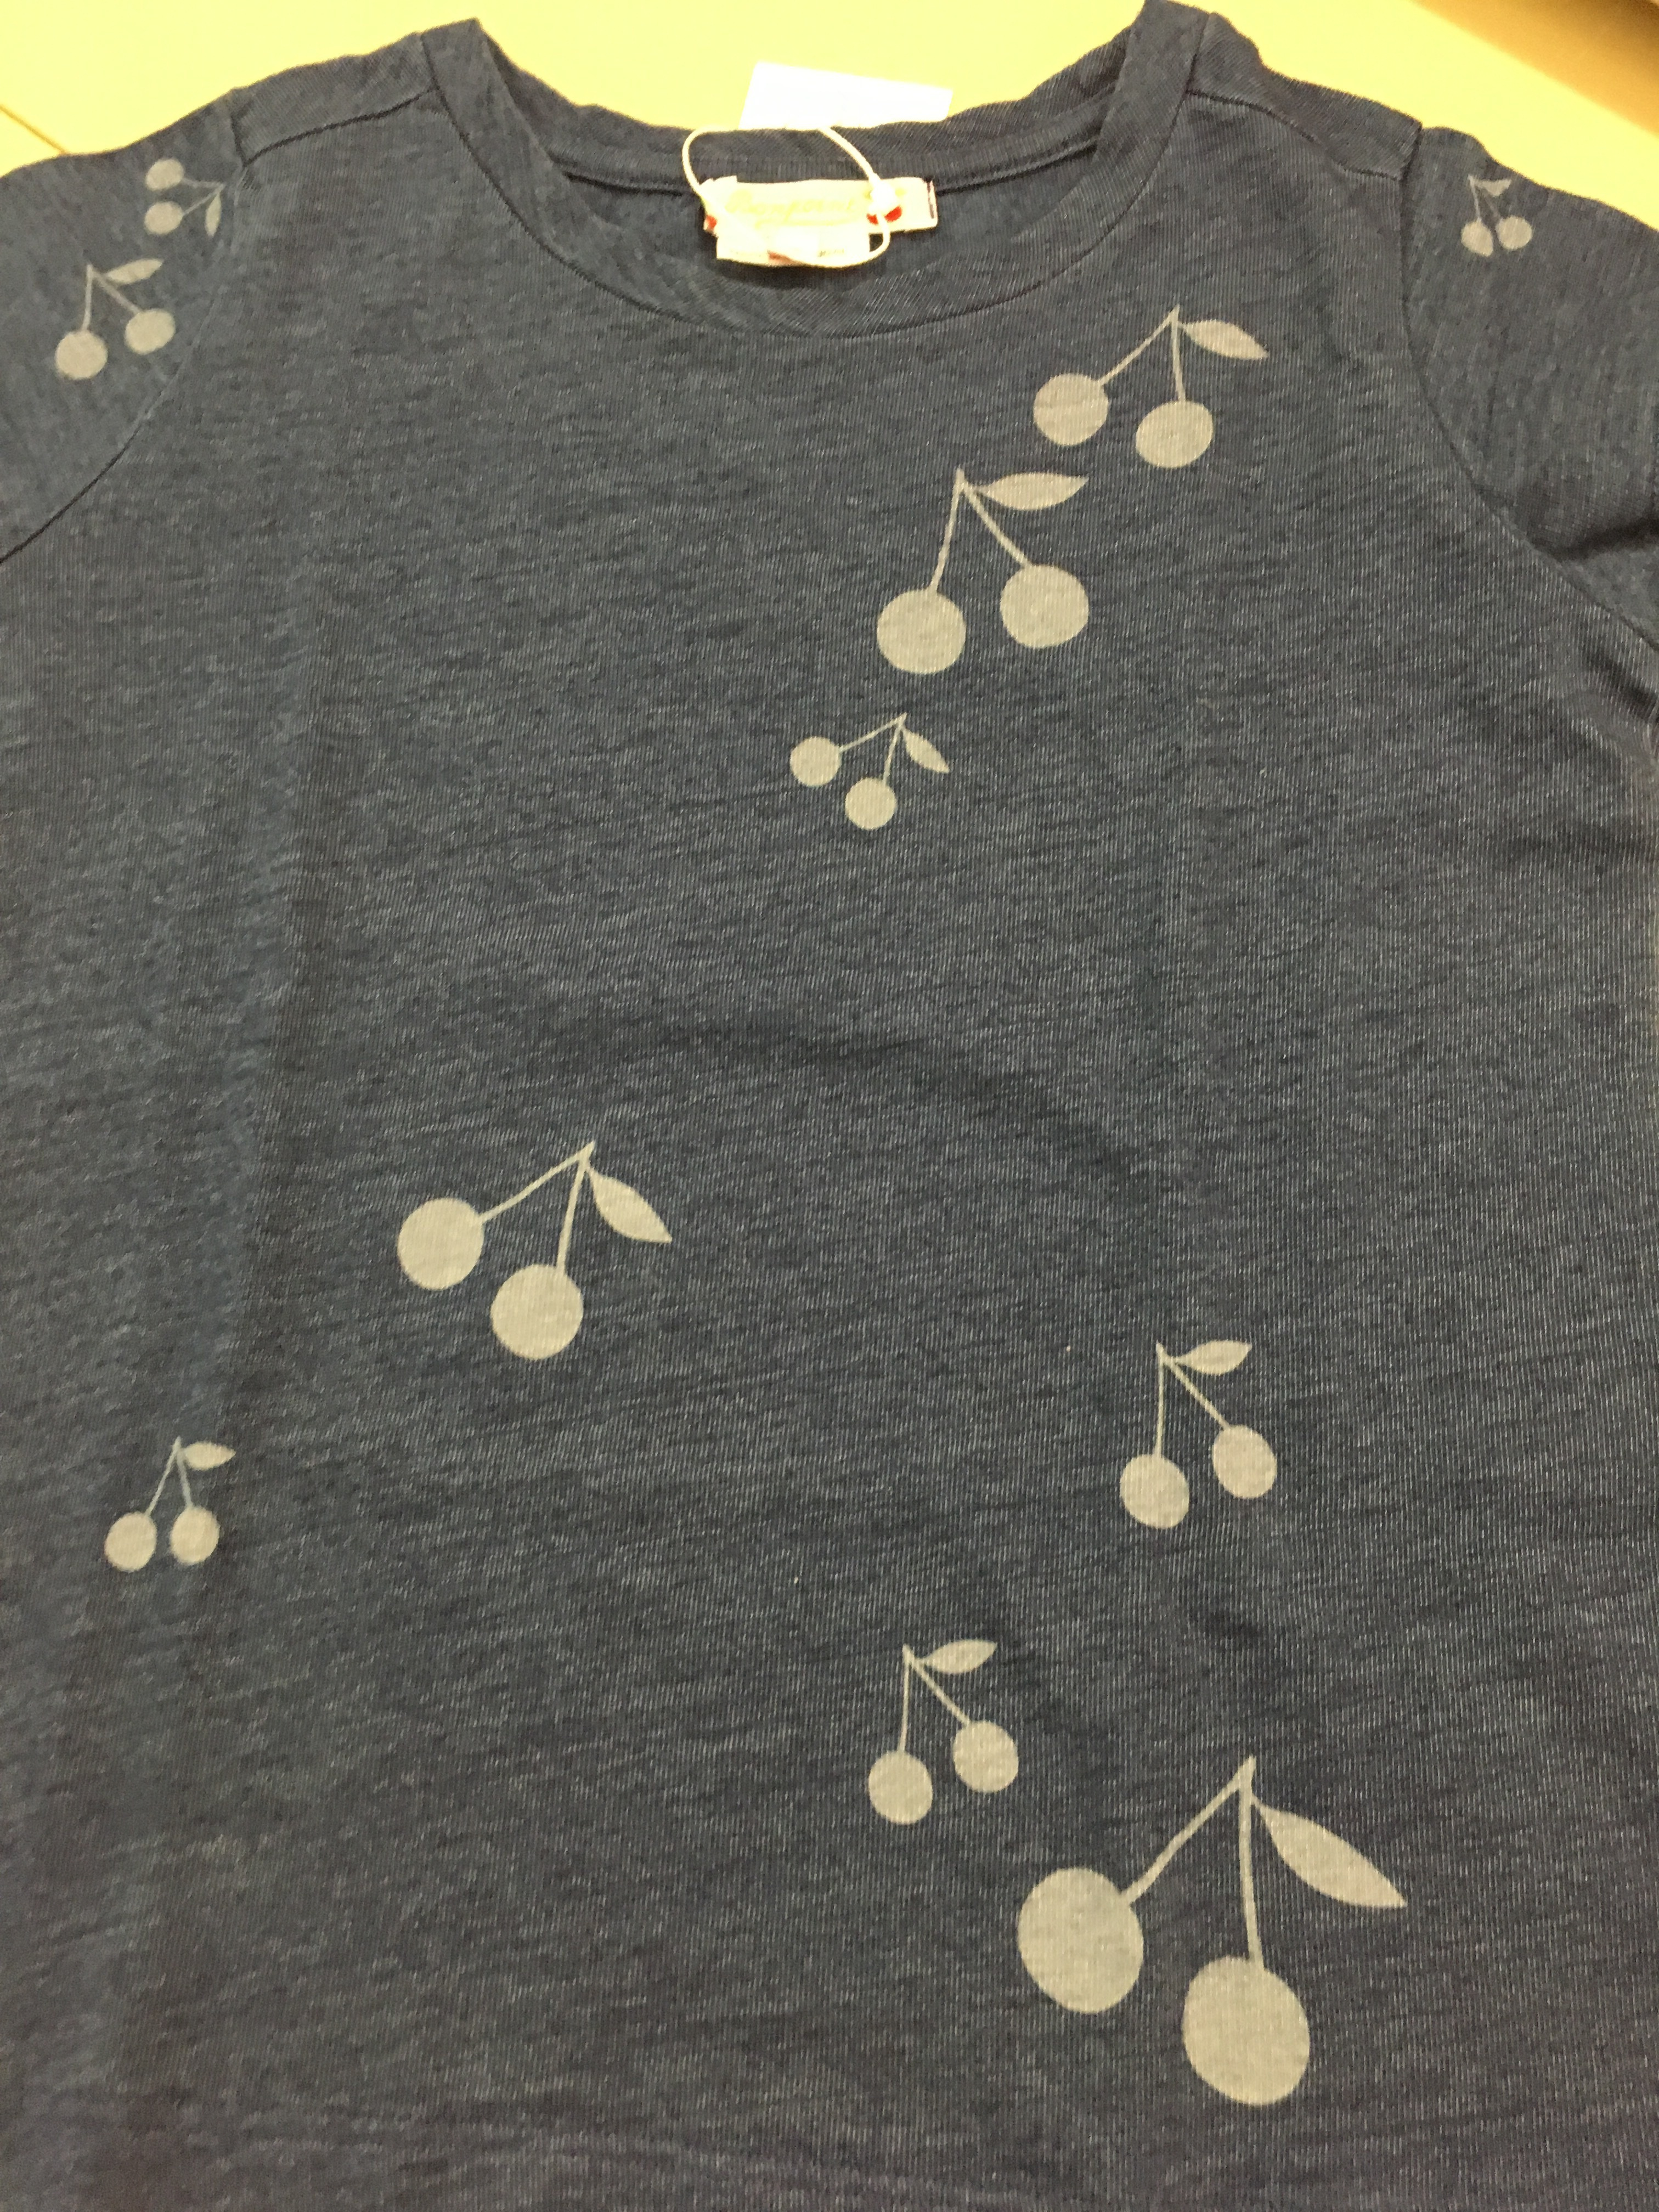 SS18 BONPOINT☆FILLE TシャツチェリーENCRE3.4.6A